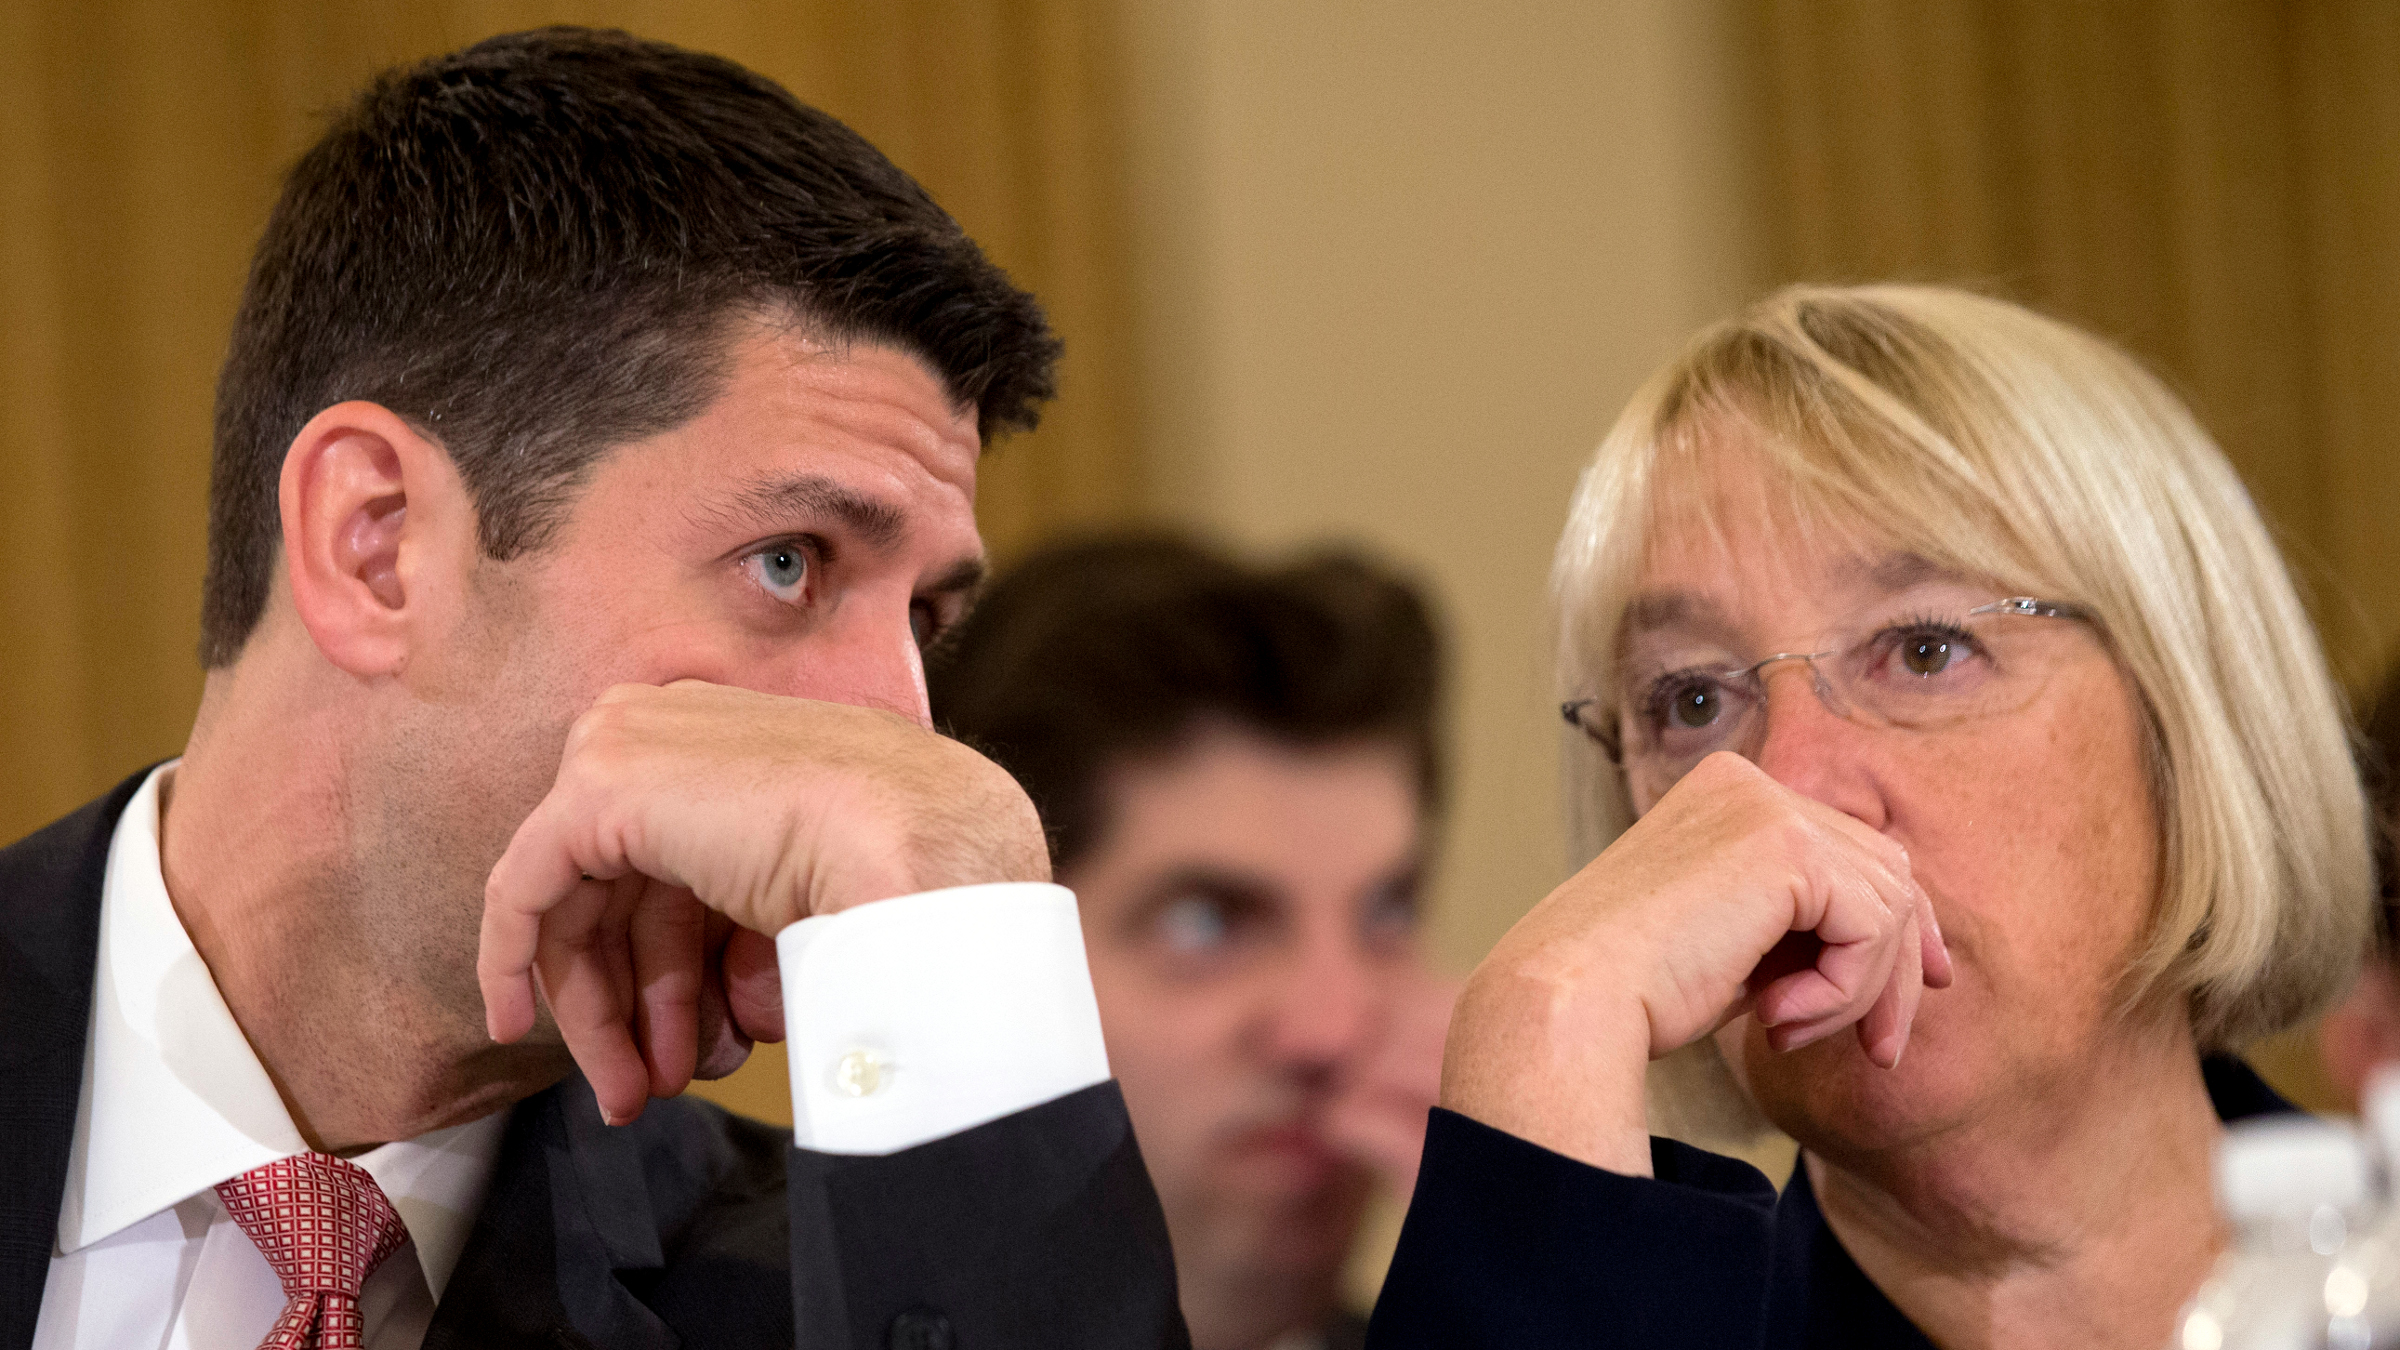 House Budget Committee Chairman Rep. Paul Ryan, R-Wis., left, speaks with Senate Budget Committee Chair Sen. Patty Murray, D-Wash., on Capitol Hill in Washington, Wednesday Nov. 13, 2013, at the start of a Congressional Budget Conference.